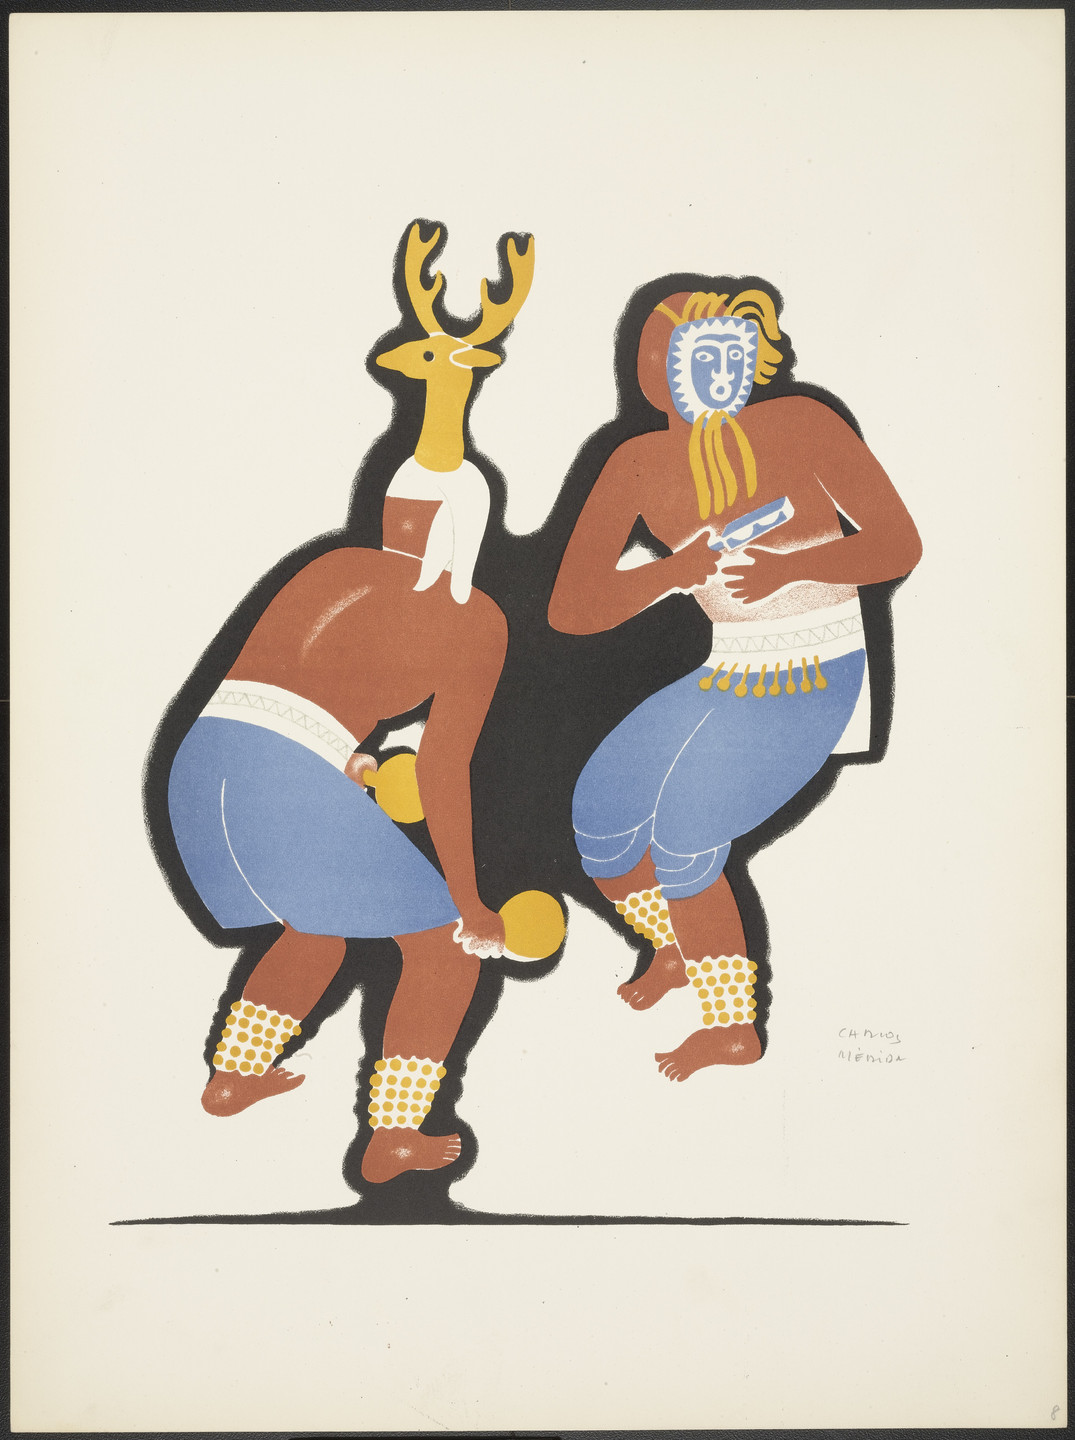 Carlos Mérida. The Pascola and the Deer from Dances of Mexico. c. 1937